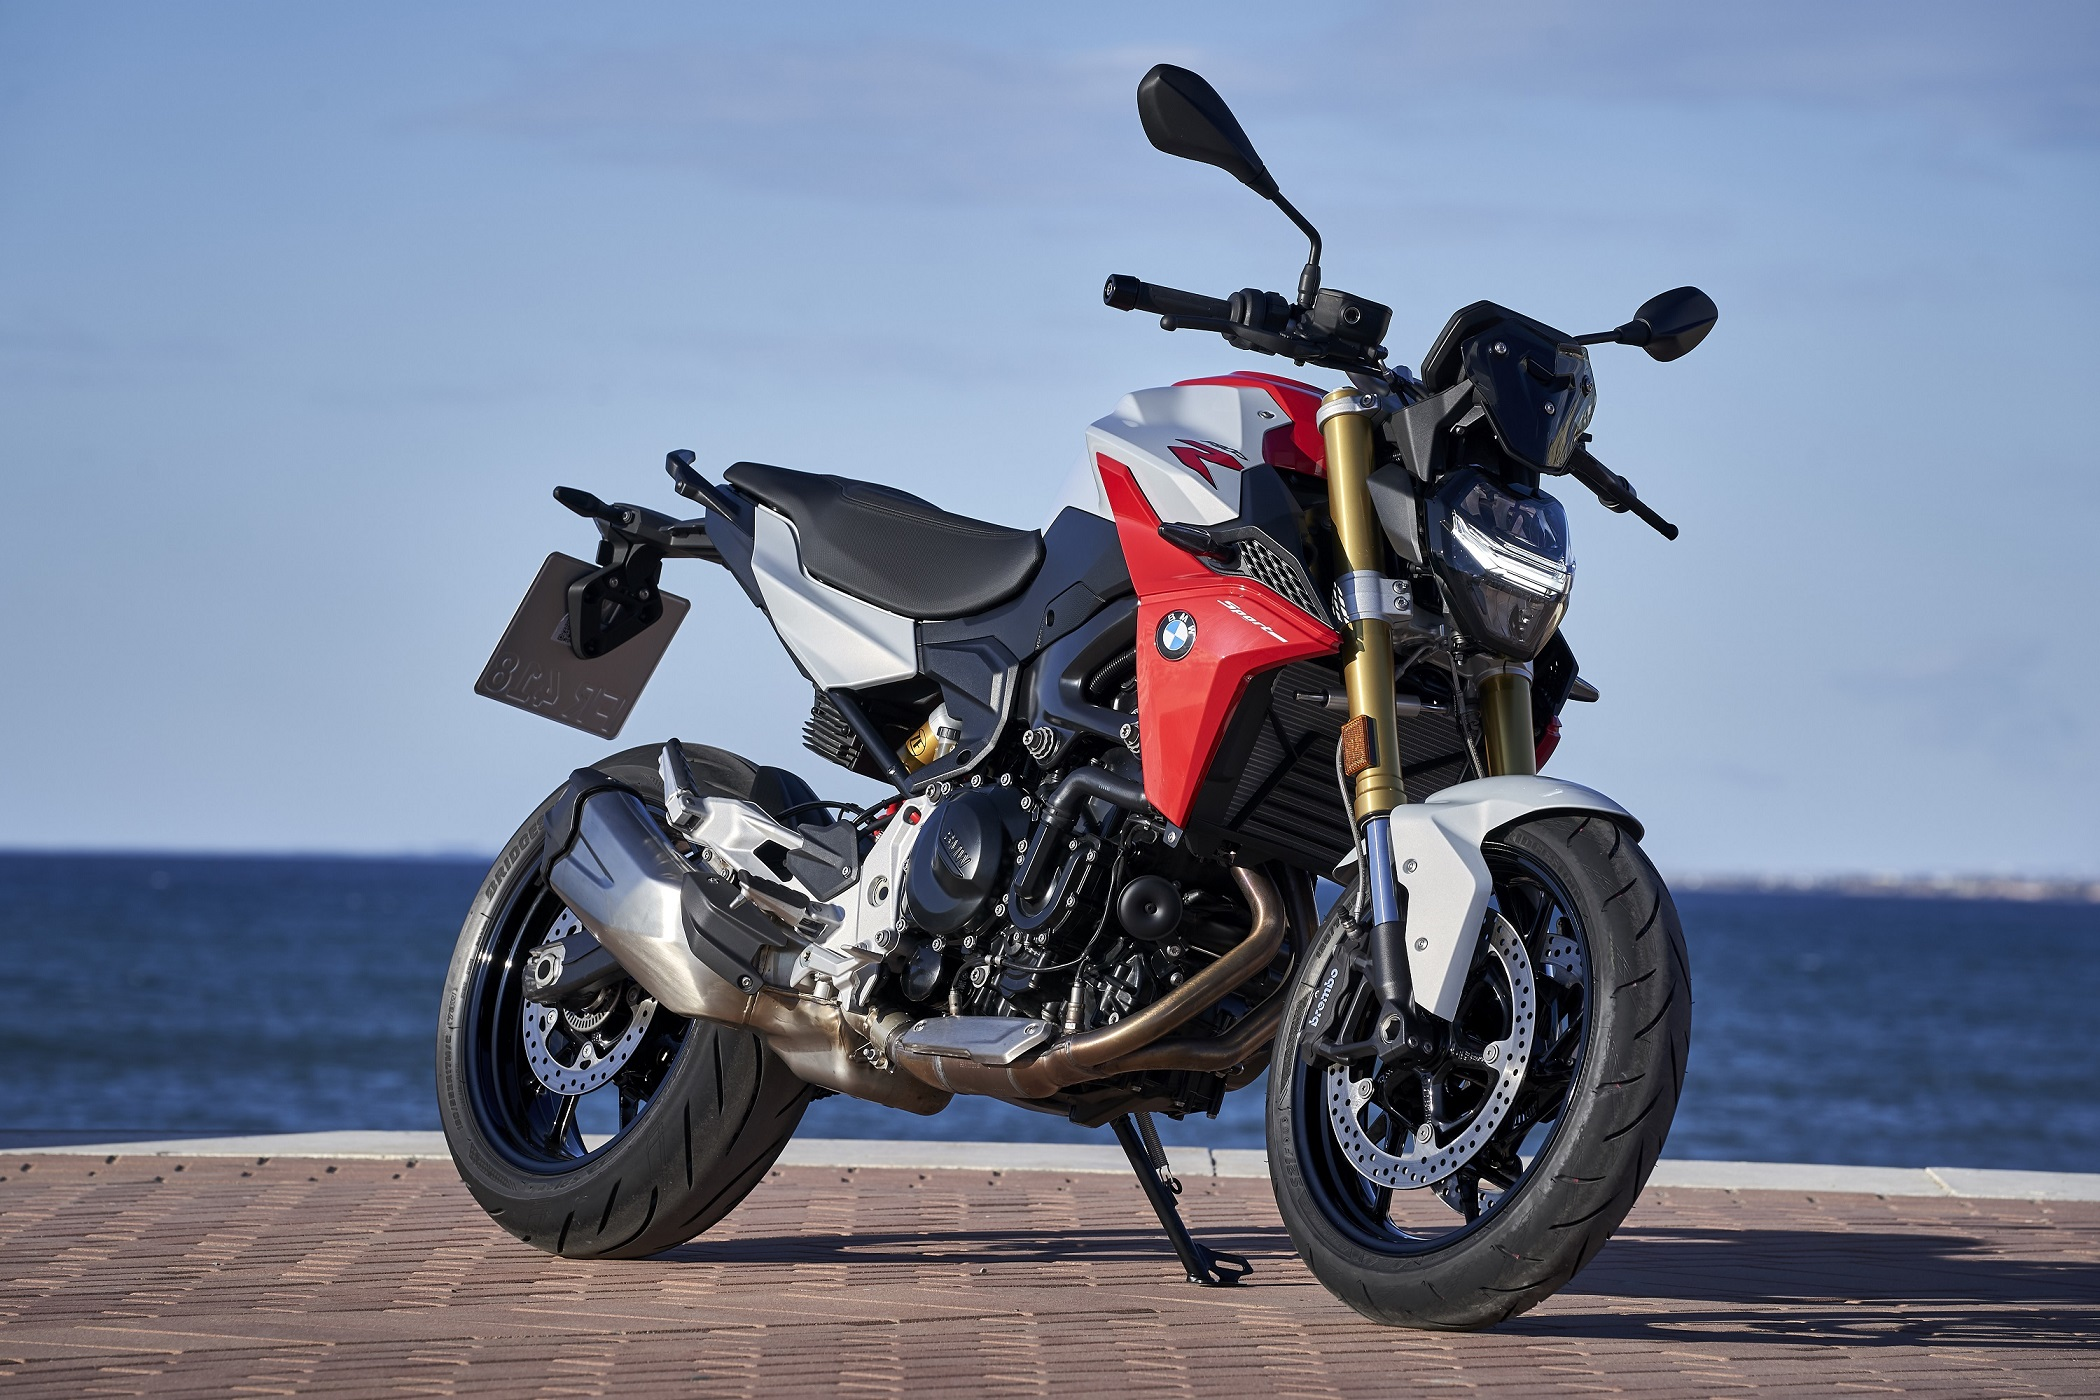 BMW F 900 R & F 900 XR Launched In India From Rs. 9.90 Lakh